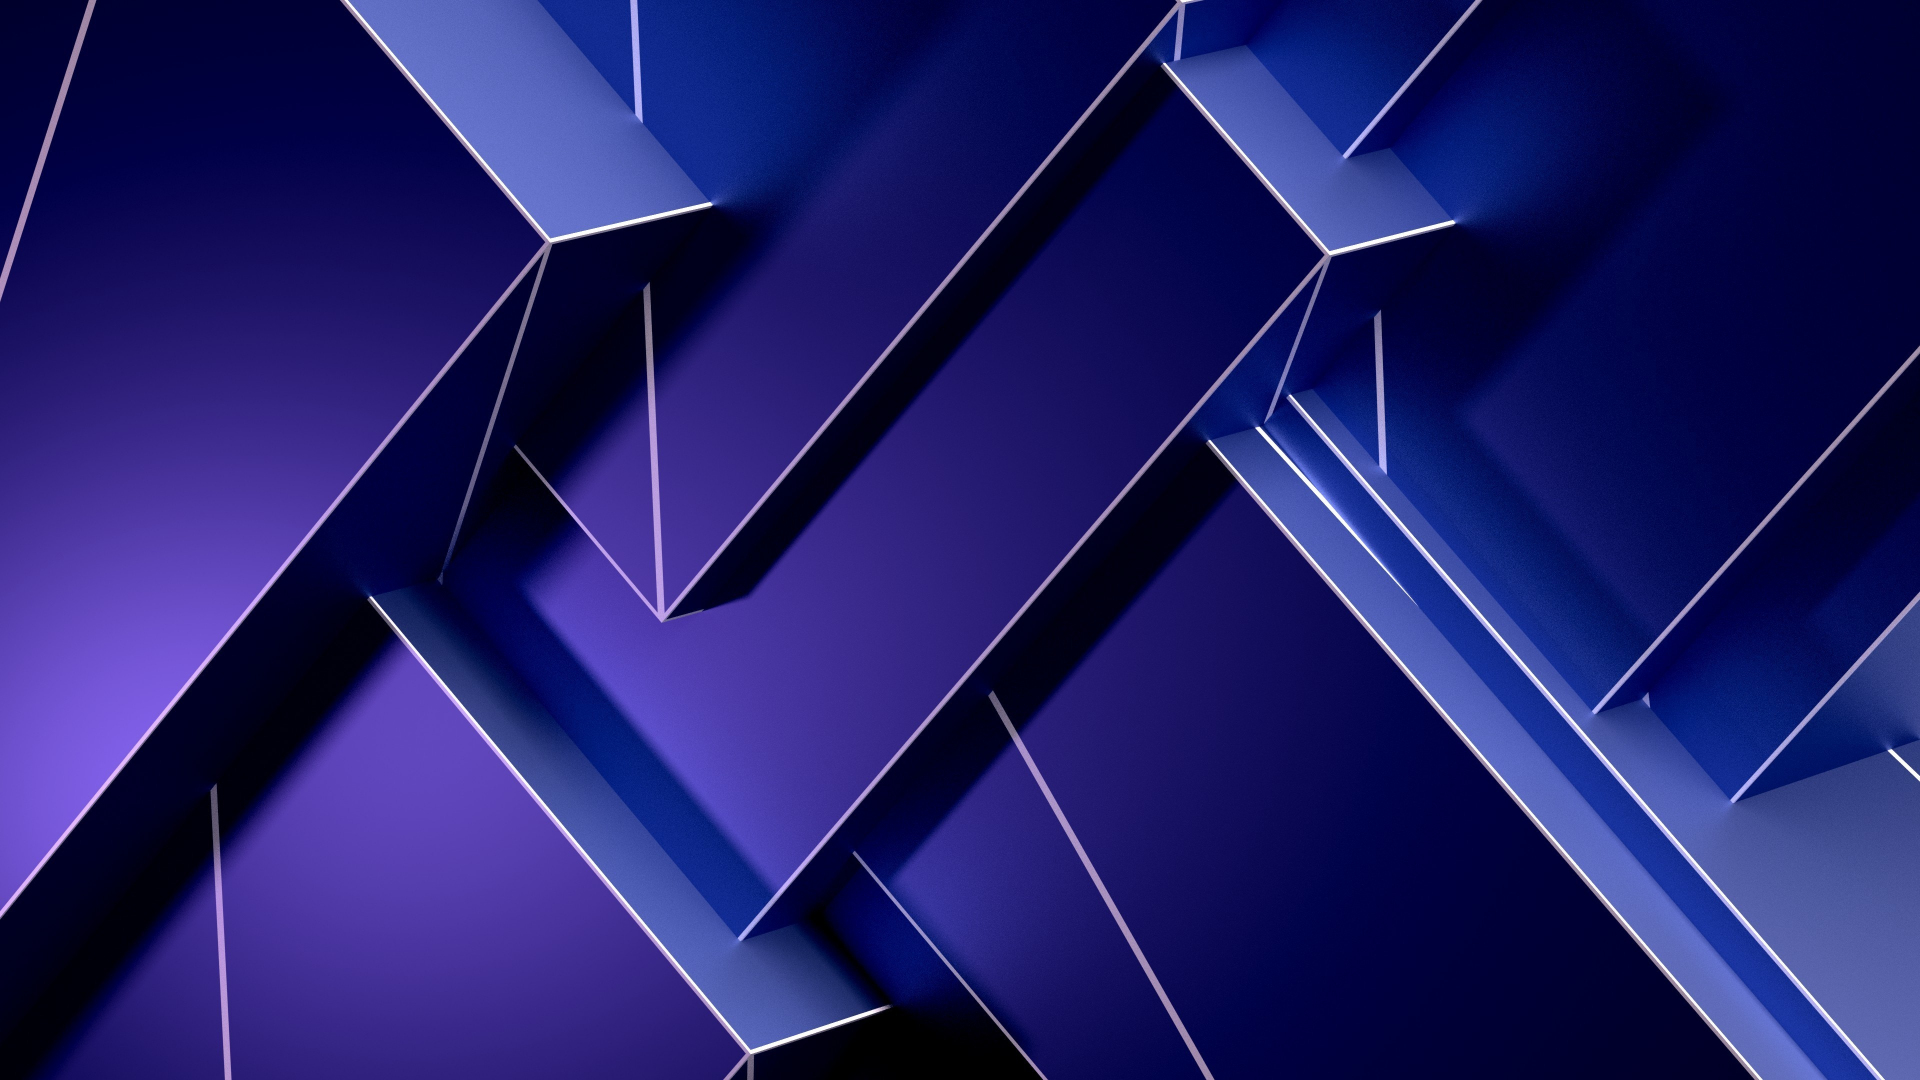 Download 1920x1080 wallpaper pattern geometry abstract - Hd pattern wallpapers 1080p ...